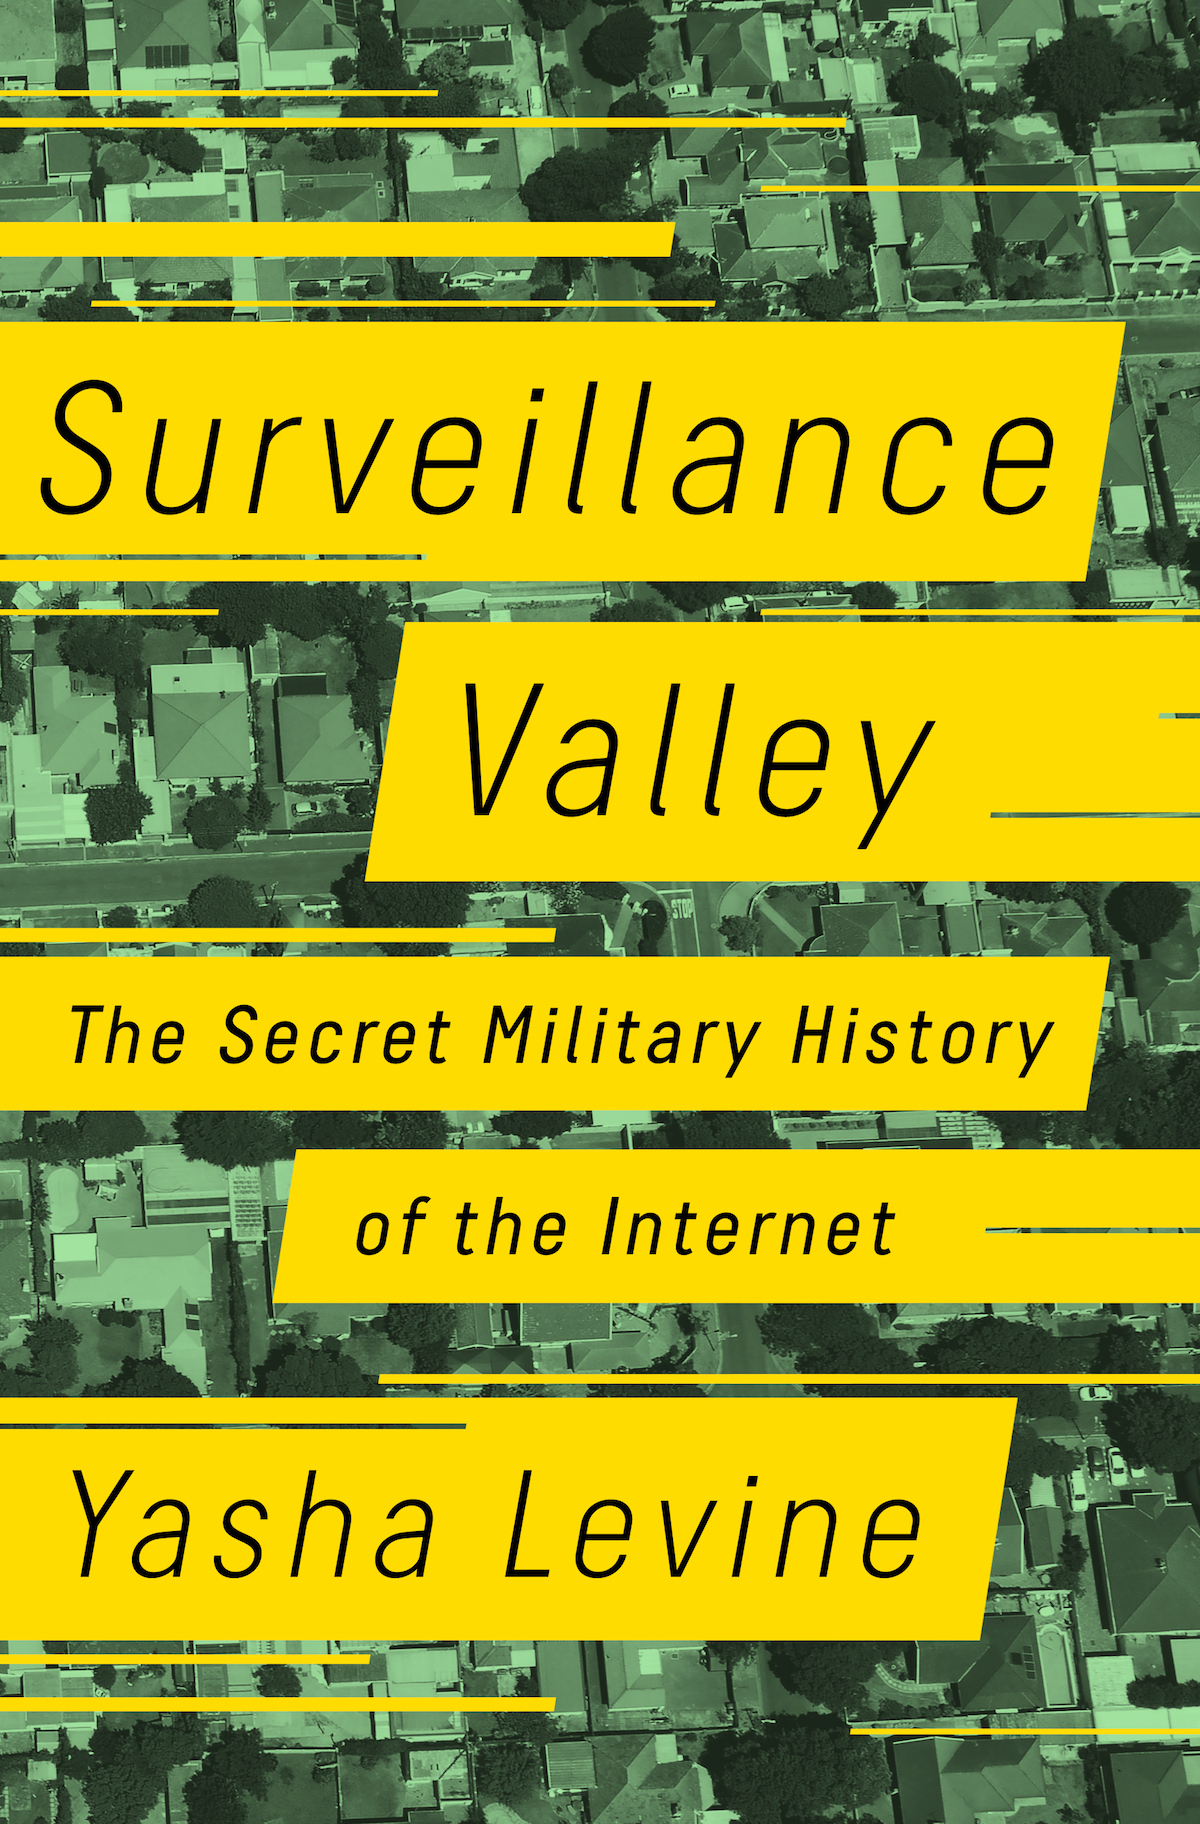 1-surveillencevalley-secret-military-history-of-the-internet